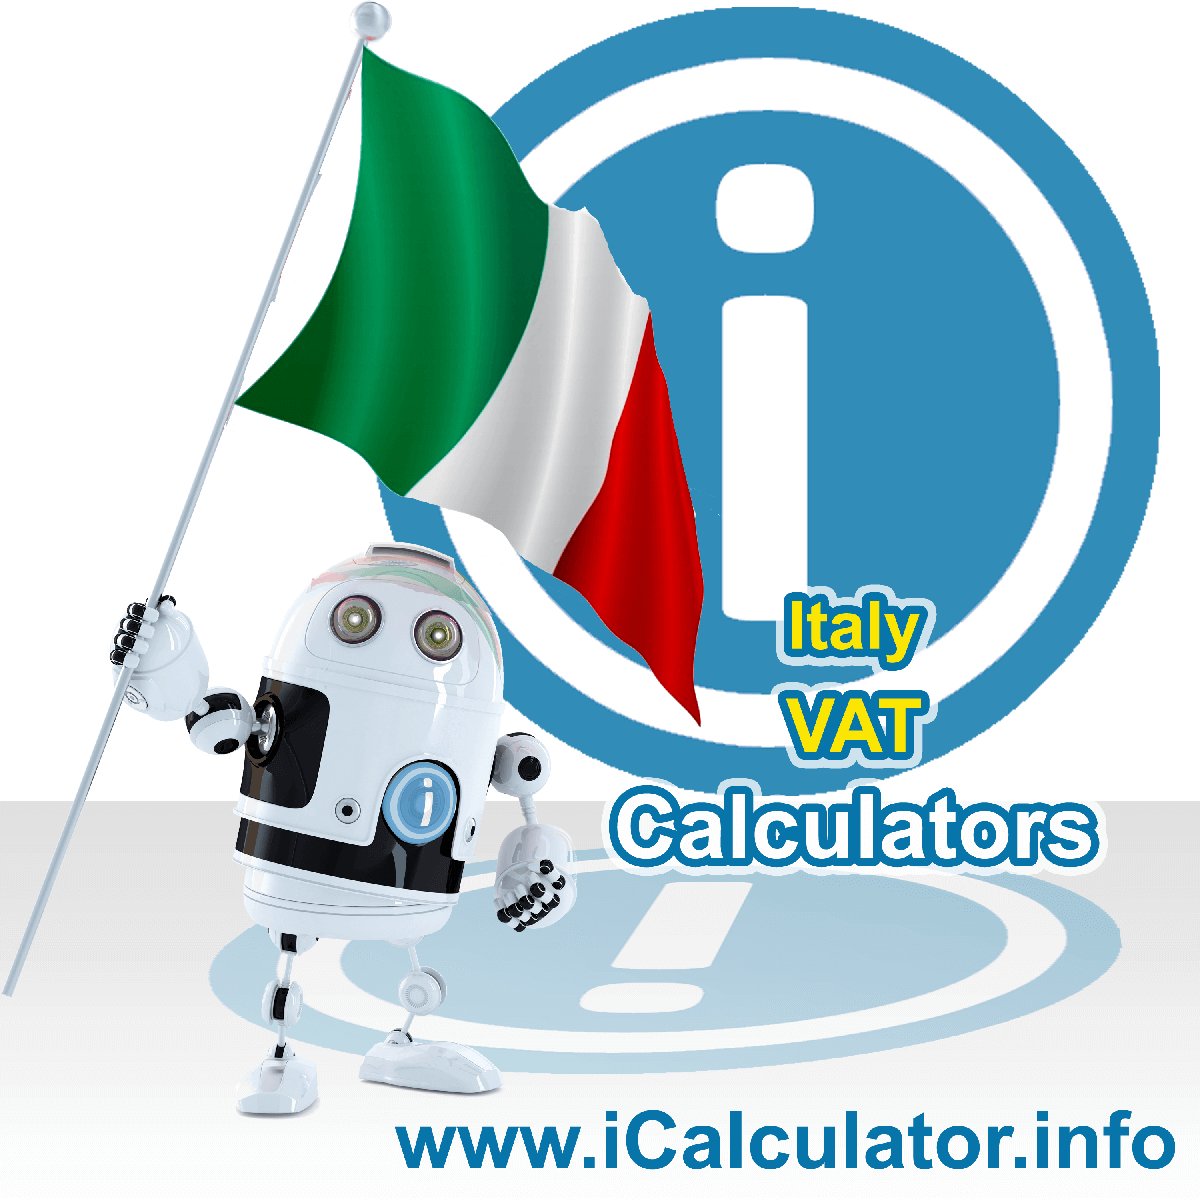 Italy VAT Calculator. This image shows the Italy flag and information relating to the VAT formula used for calculating Value Added Tax in Italy using the Italy VAT Calculator in 2020